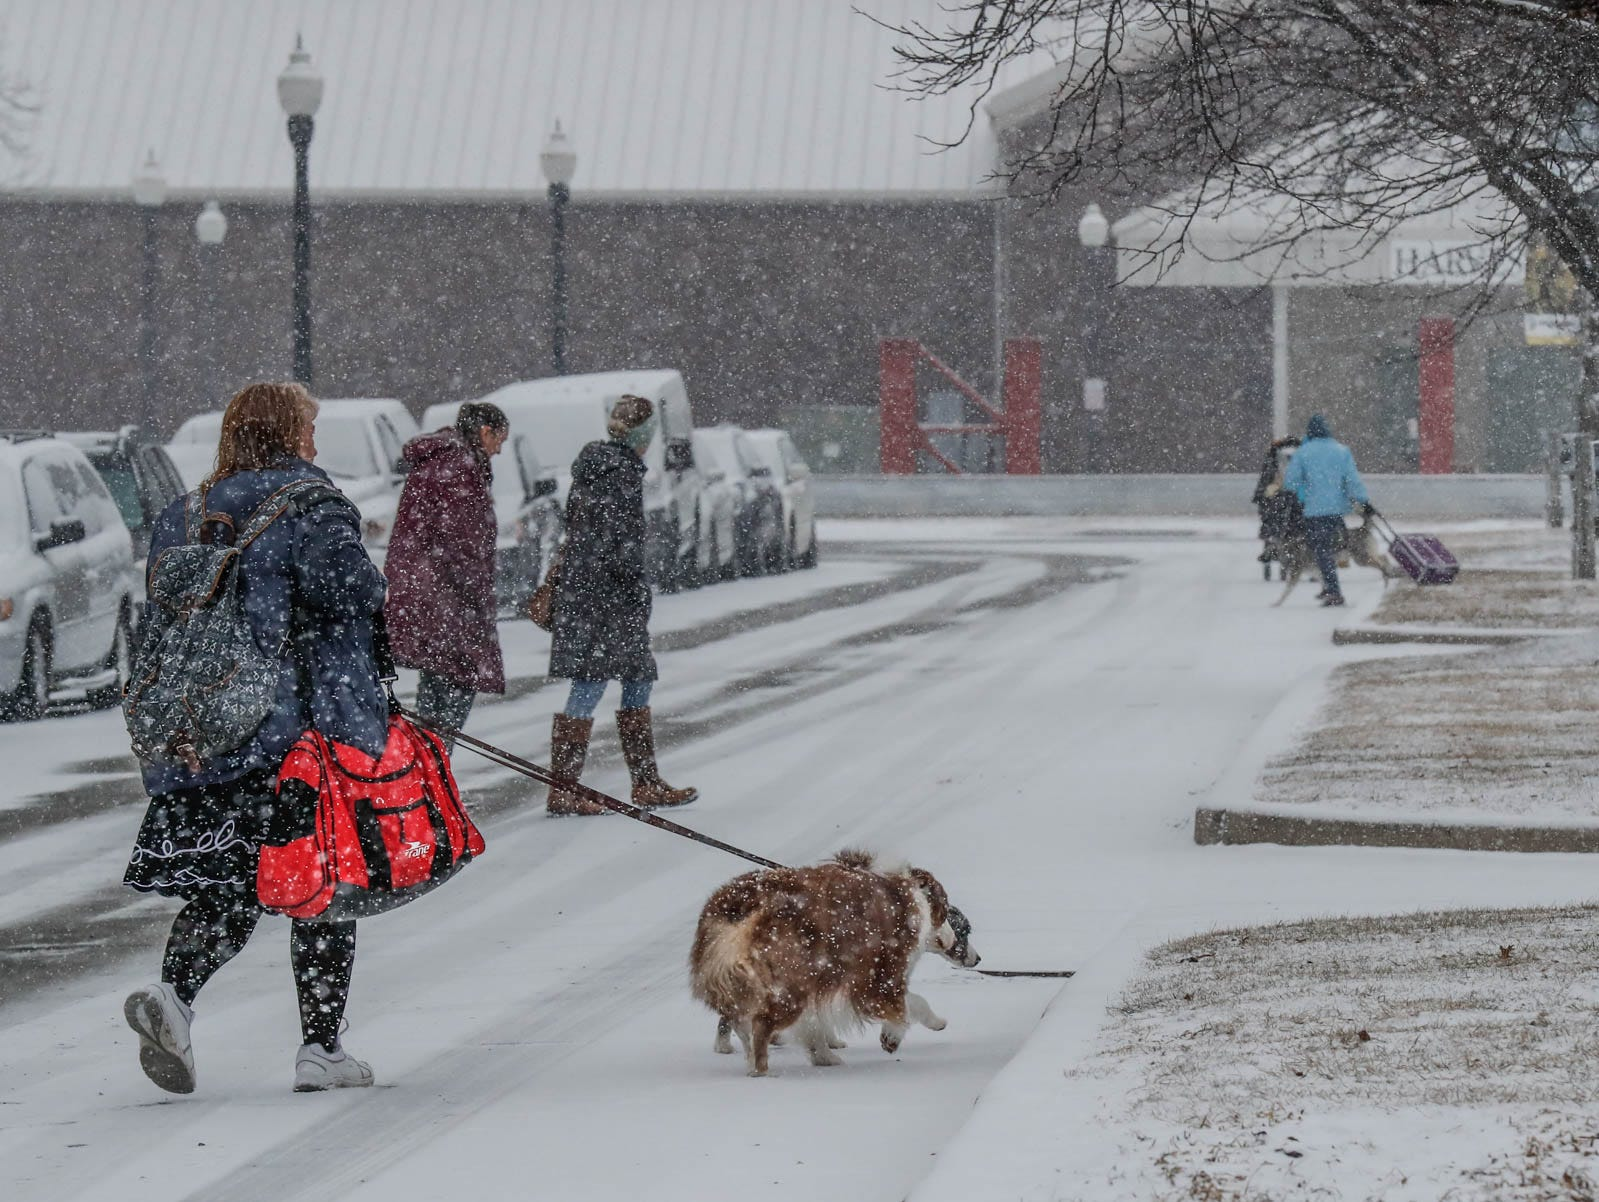 Pet parents walk their dogs outside the Indy Winter Classic All Breed Dog Show at the Indiana State Fairgrounds on Sunday, Feb. 10, 2019.